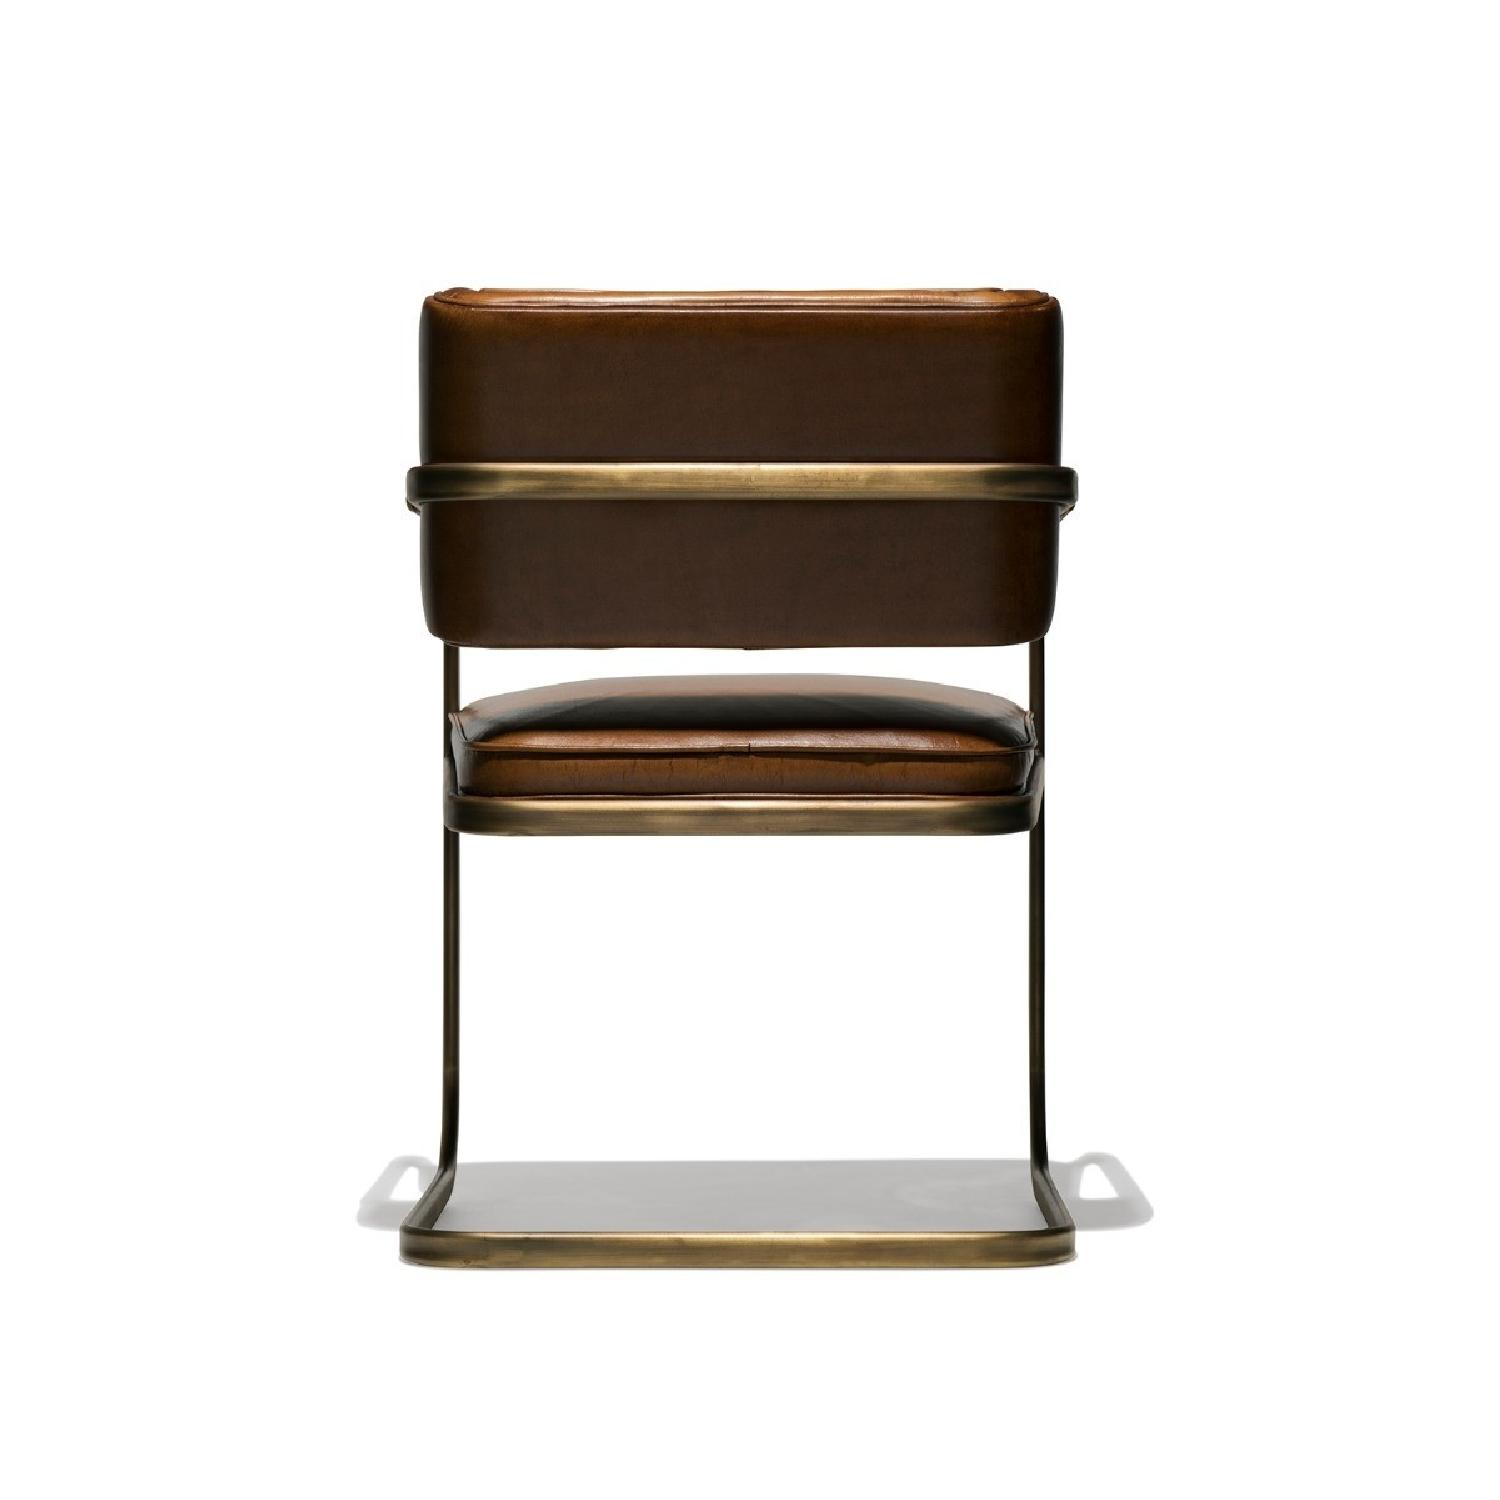 Industry West Jimmy Cooper Chair in Light Brown/Copper - image-3